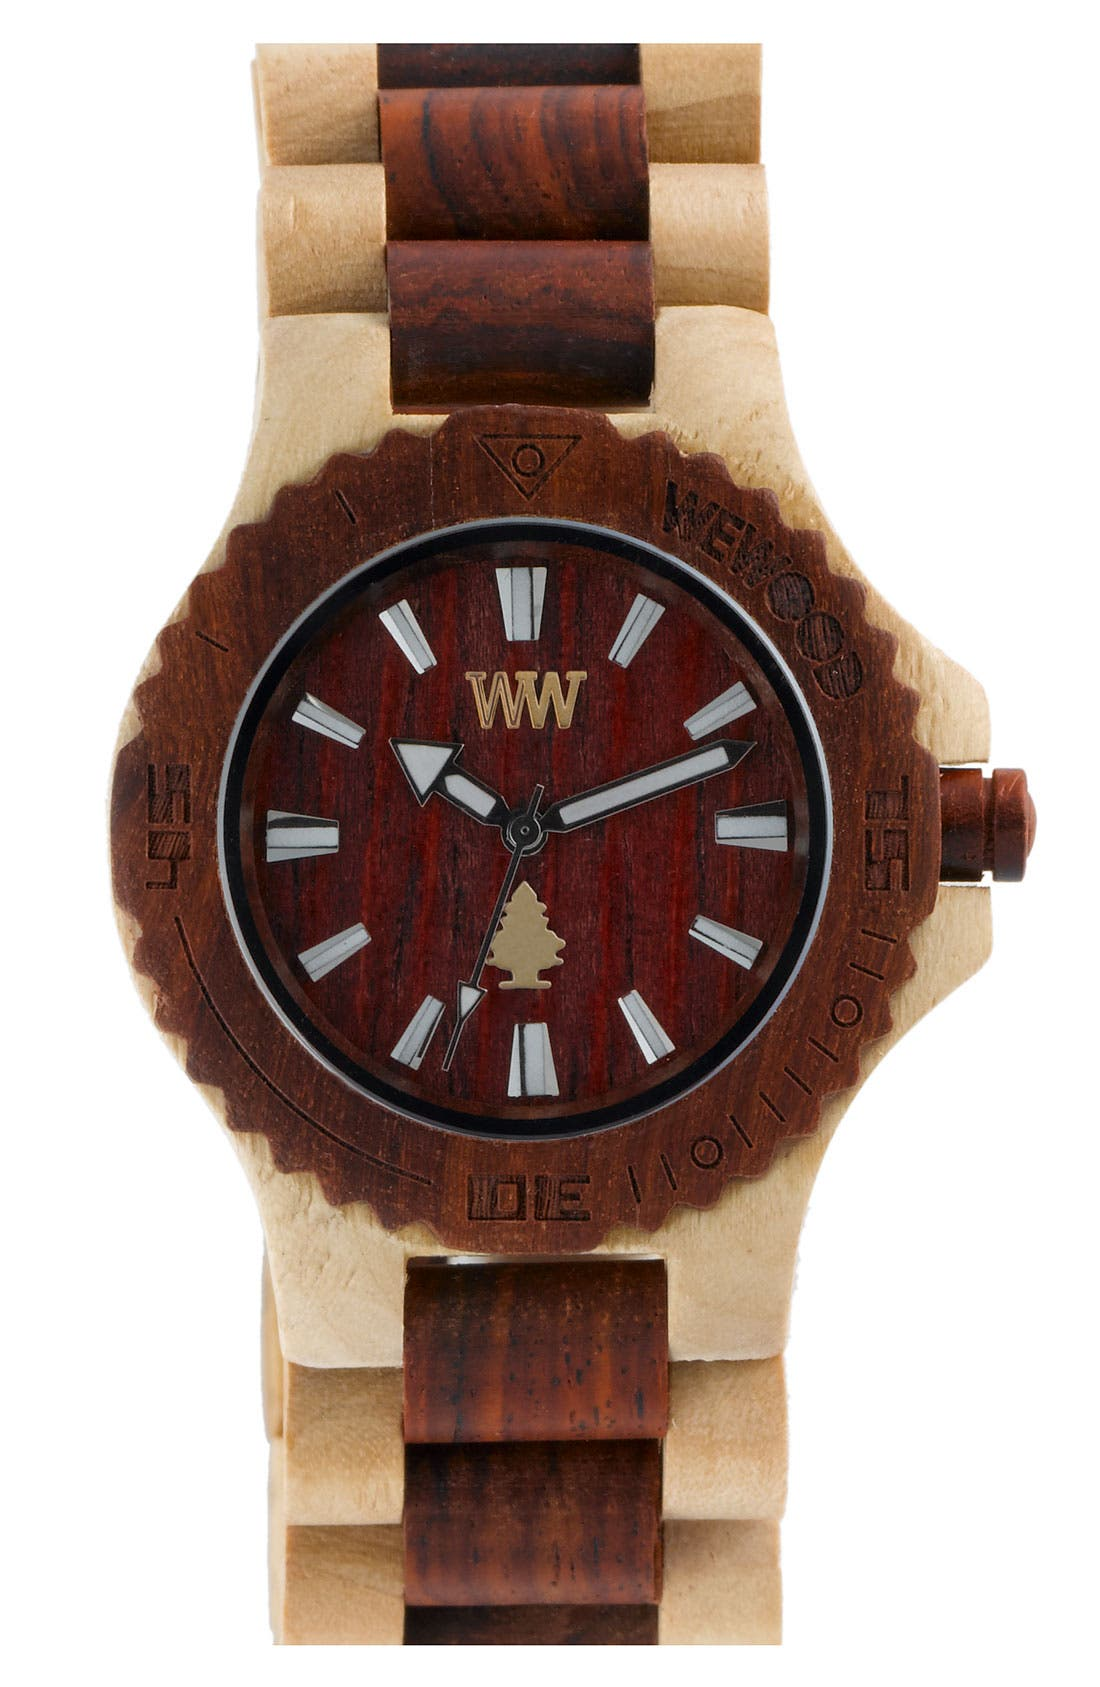 Alternate Image 1 Selected - WEWOOD 'Date' Wood Watch